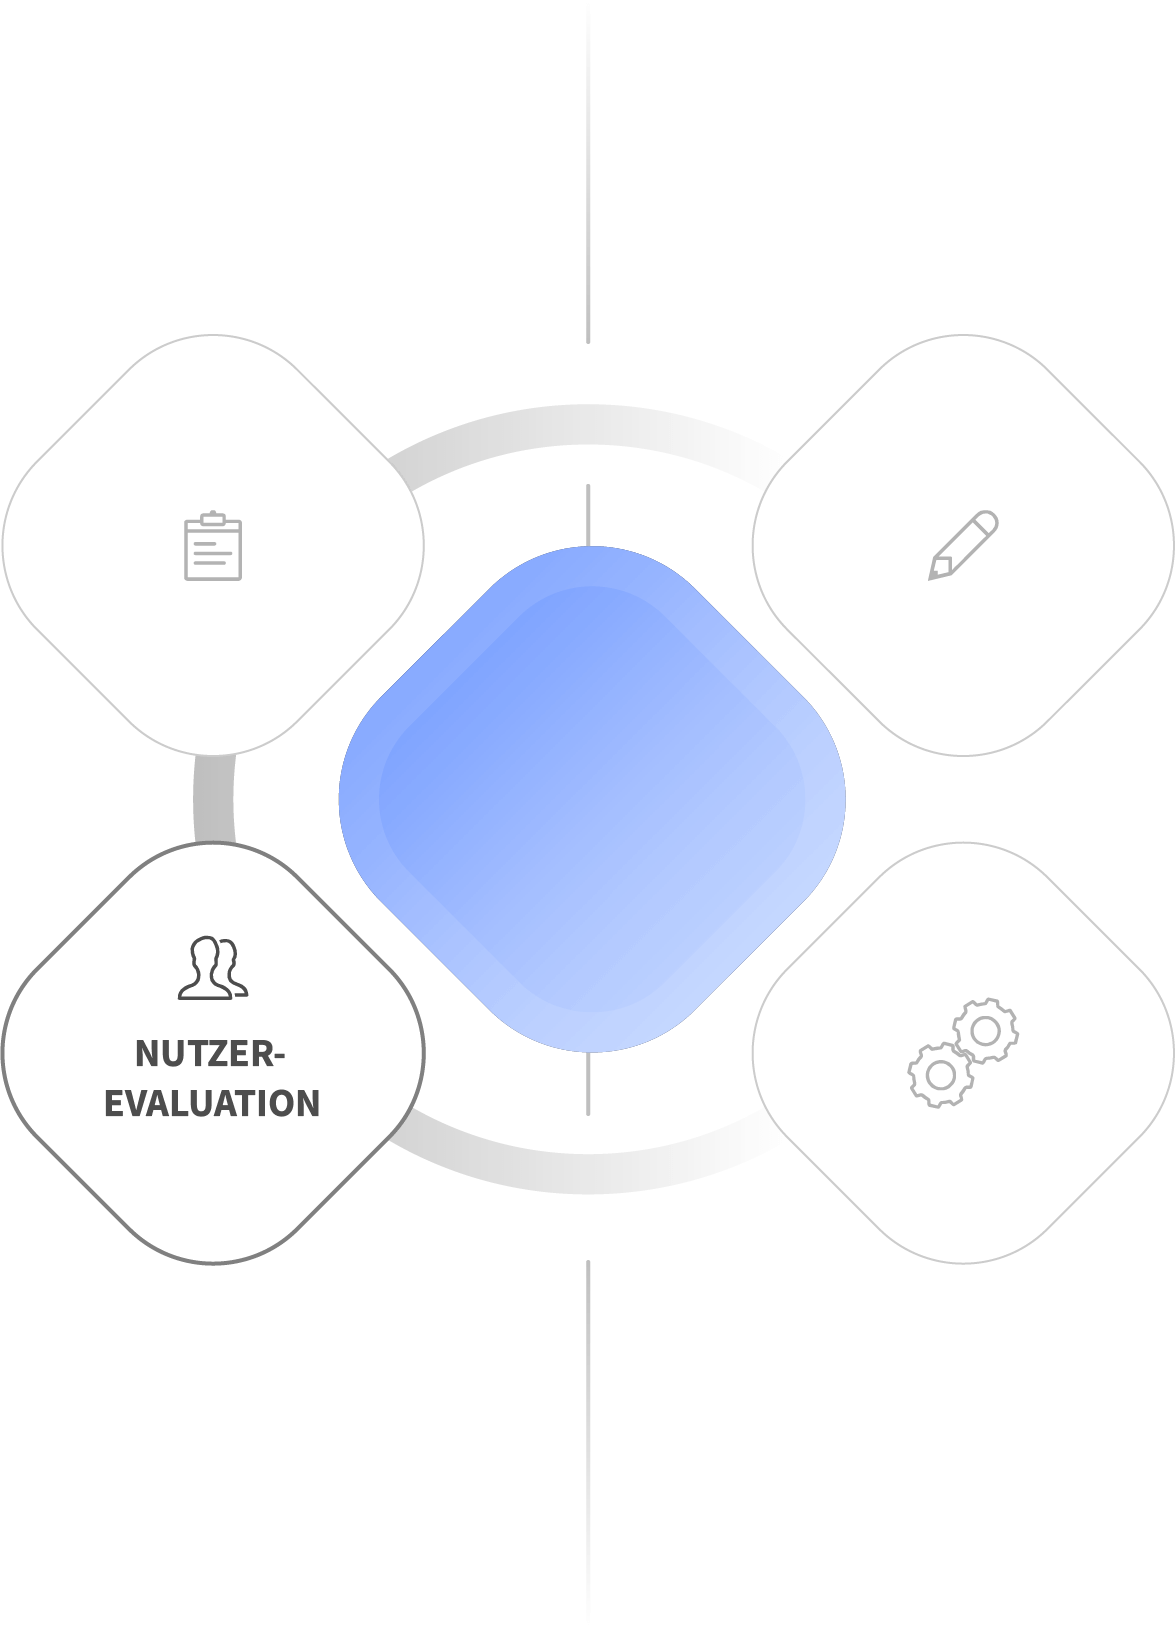 Usability Engineering - Services - Nutzerevaluation